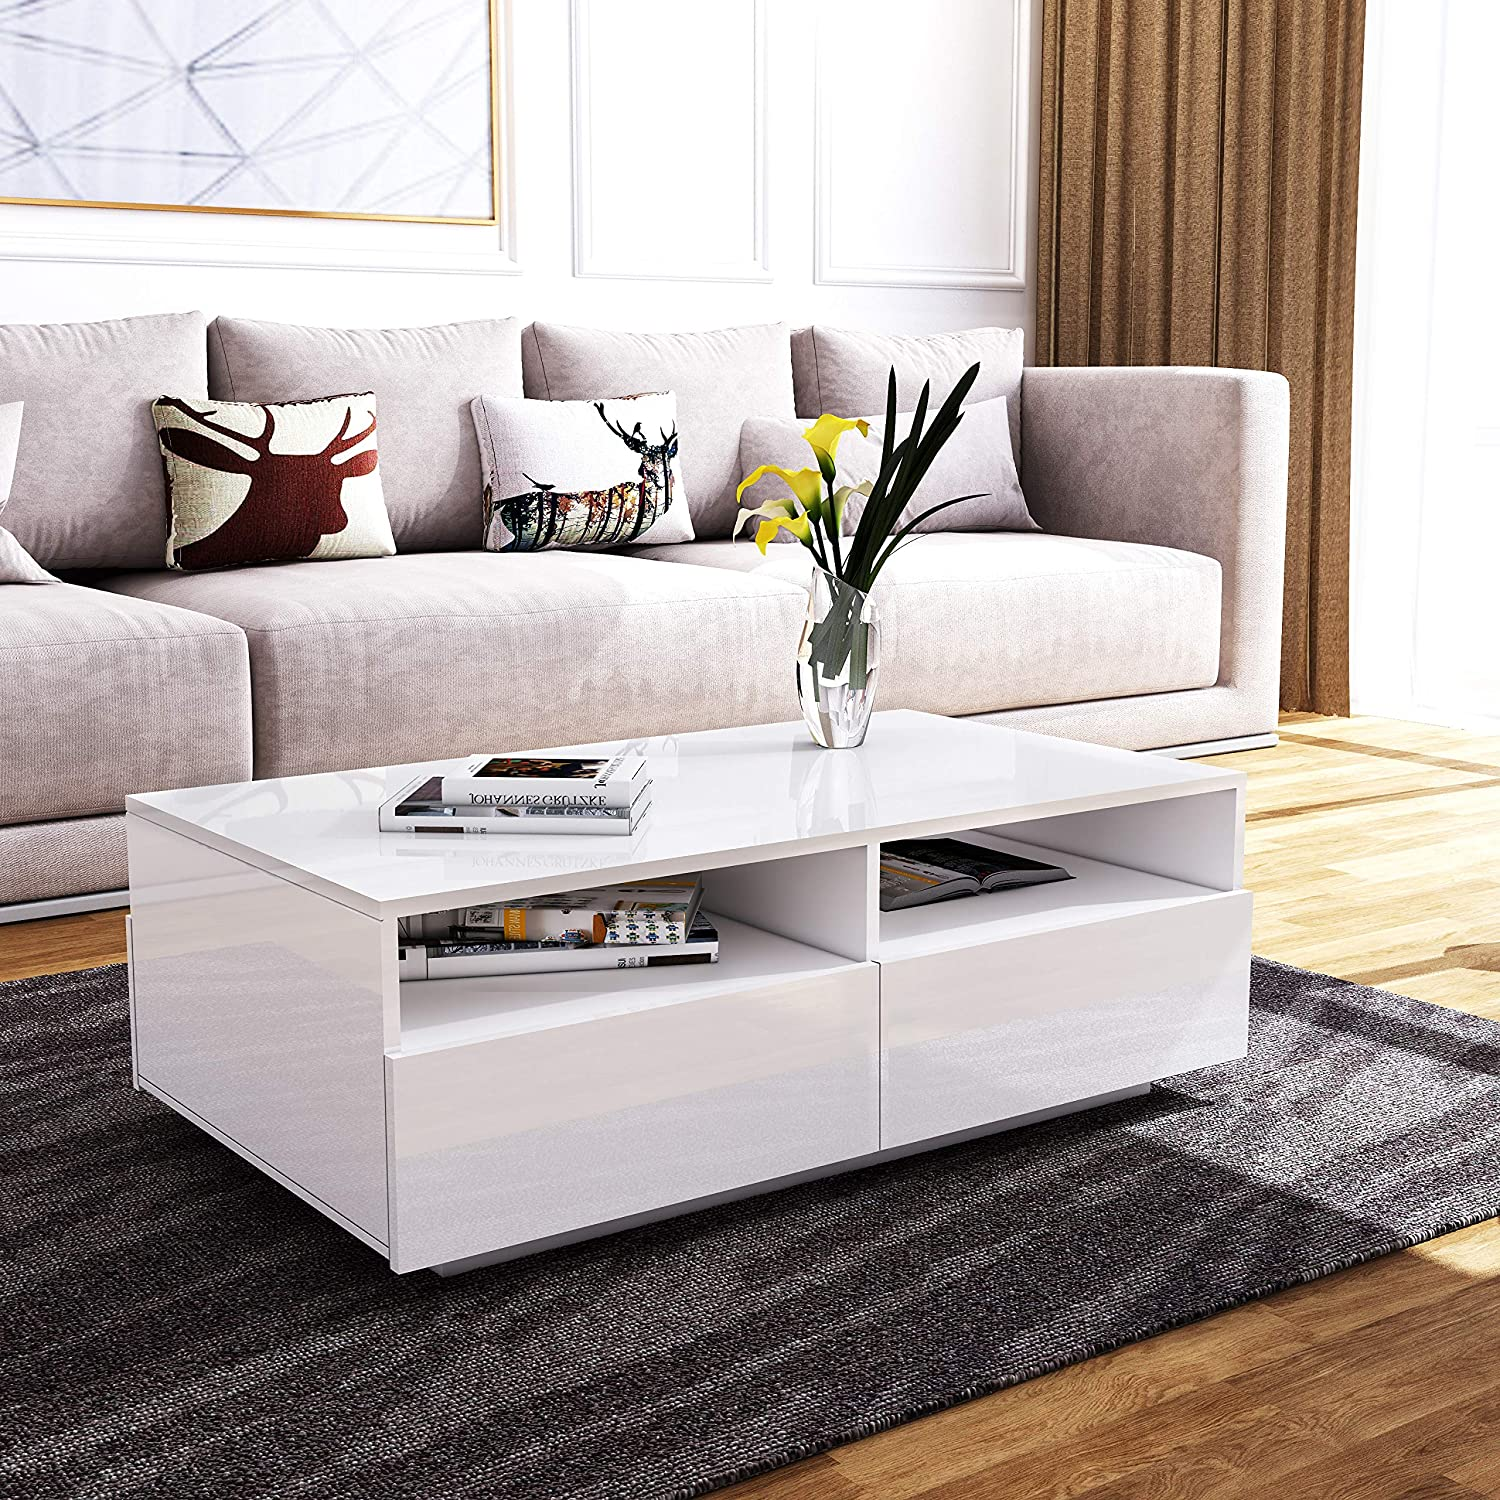 4 Storage Drawers With Open Case Modern White High Gloss Coffee